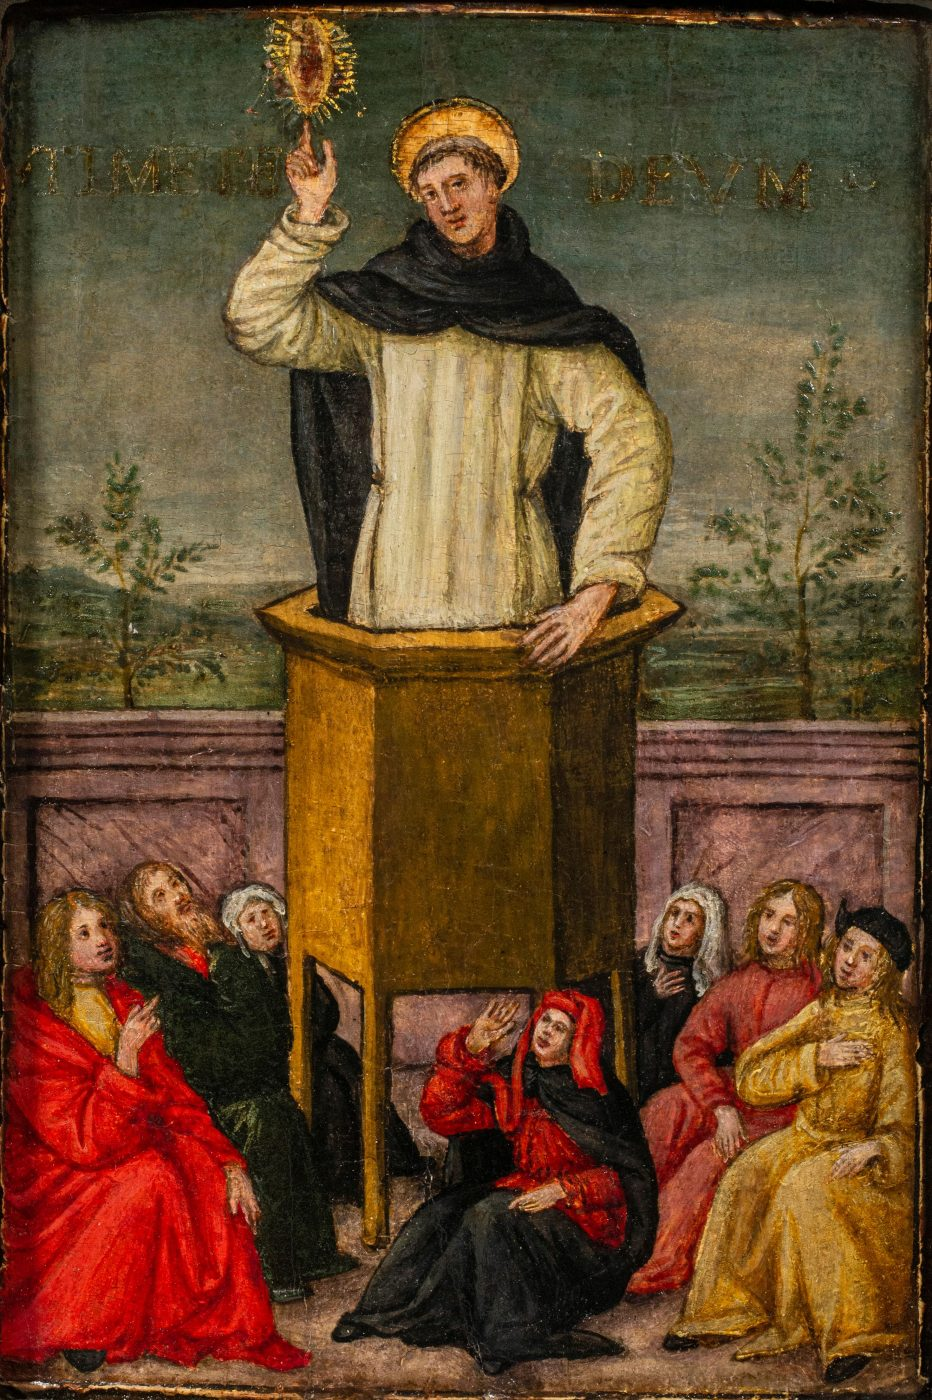 Saint Vincent Ferrer Preaching to the People of Salamanca, ca. 1500, by the Master of Montespertoli, offered by Robert Simon Fine Art